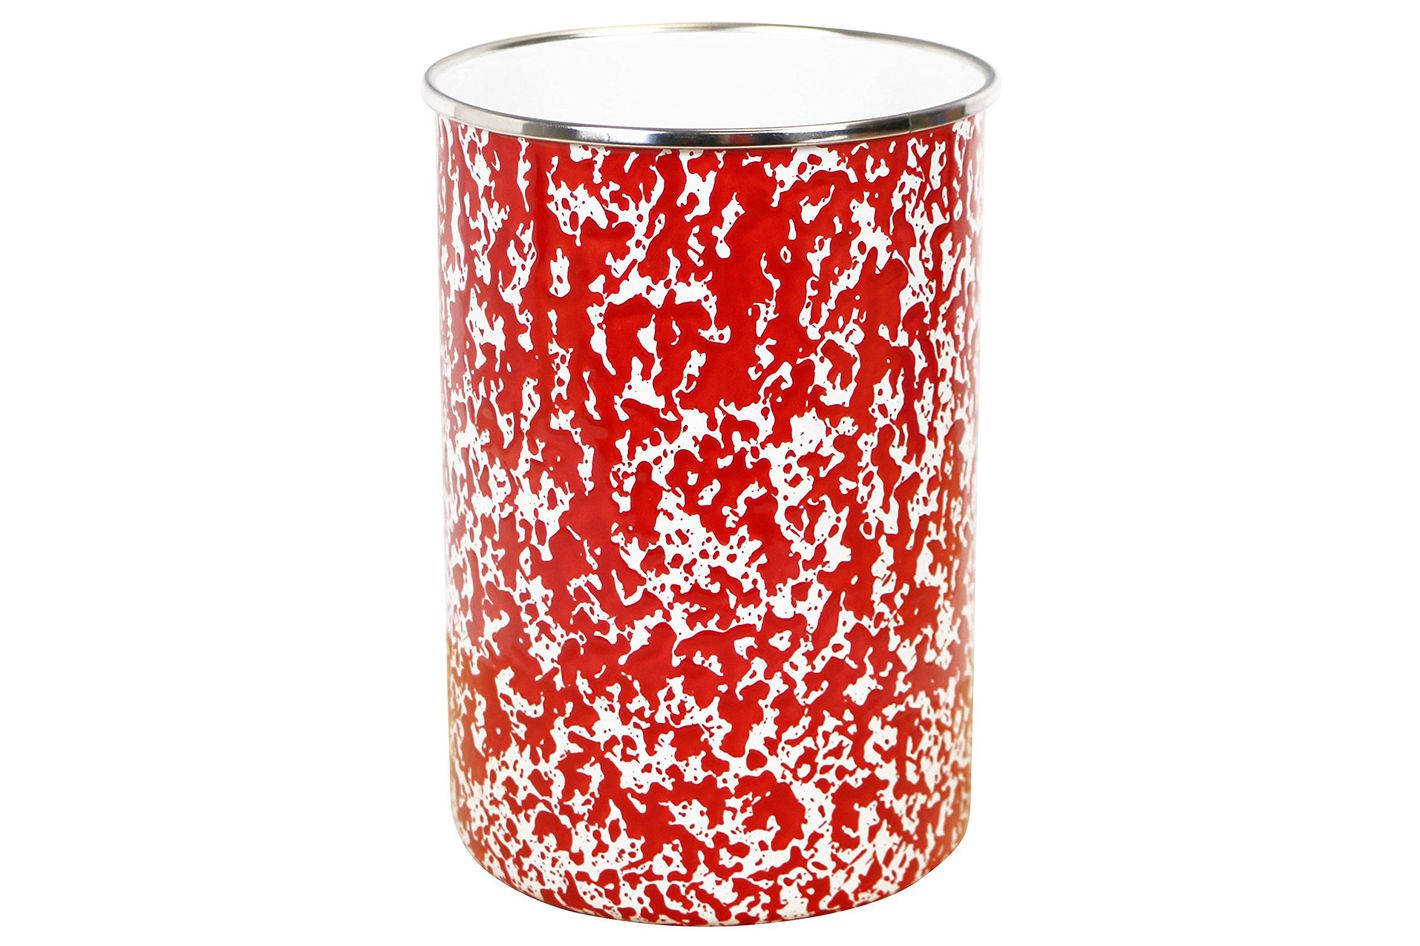 Calypso Basics by Reston Lloyd Marble Enamel on Steel Utensil Holder, Red Marble